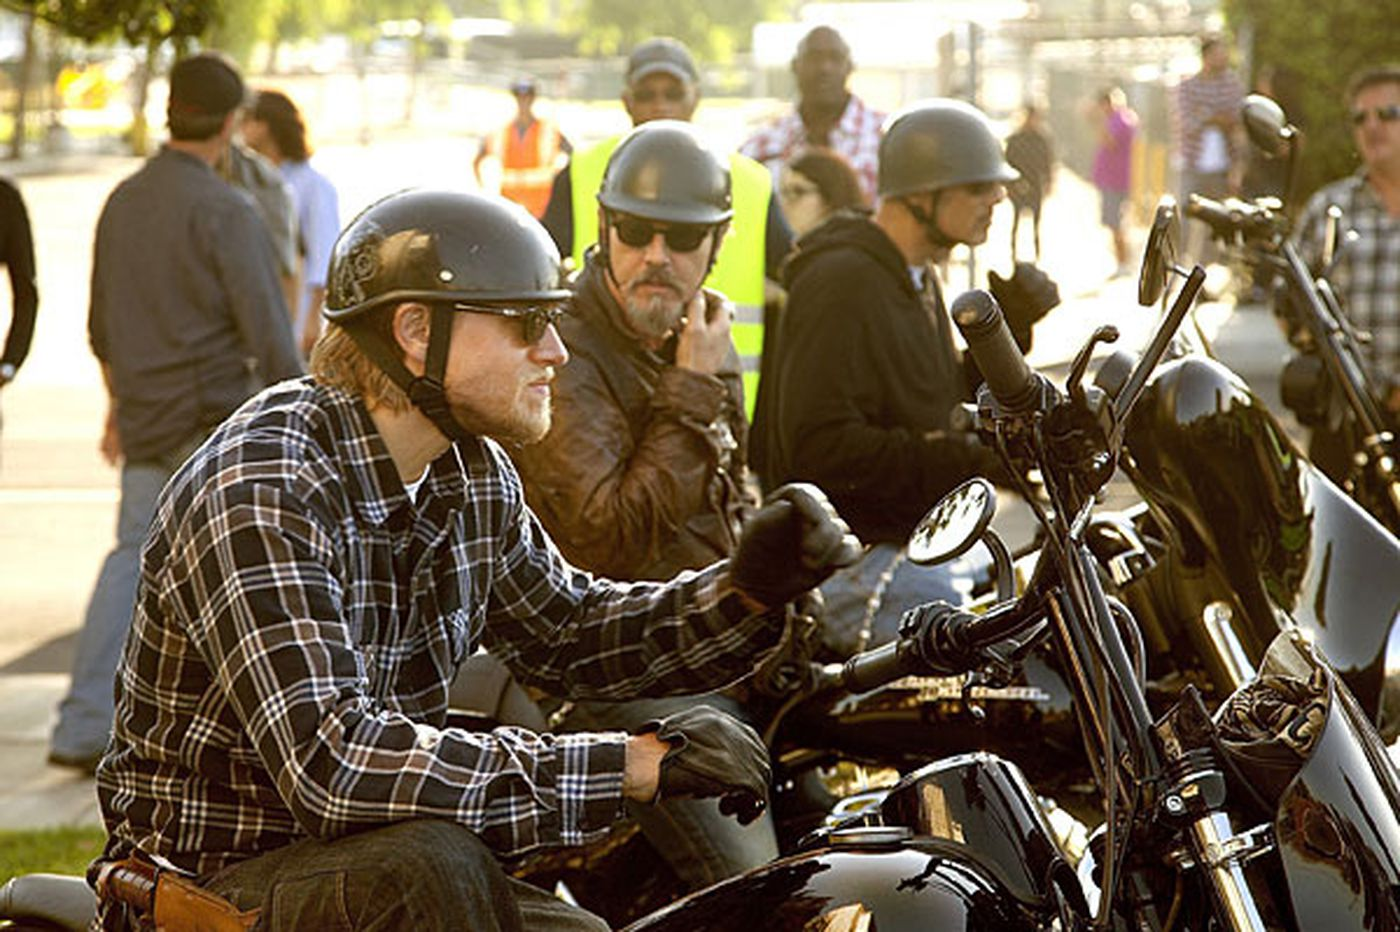 Last ride with 'Sons of Anarchy'